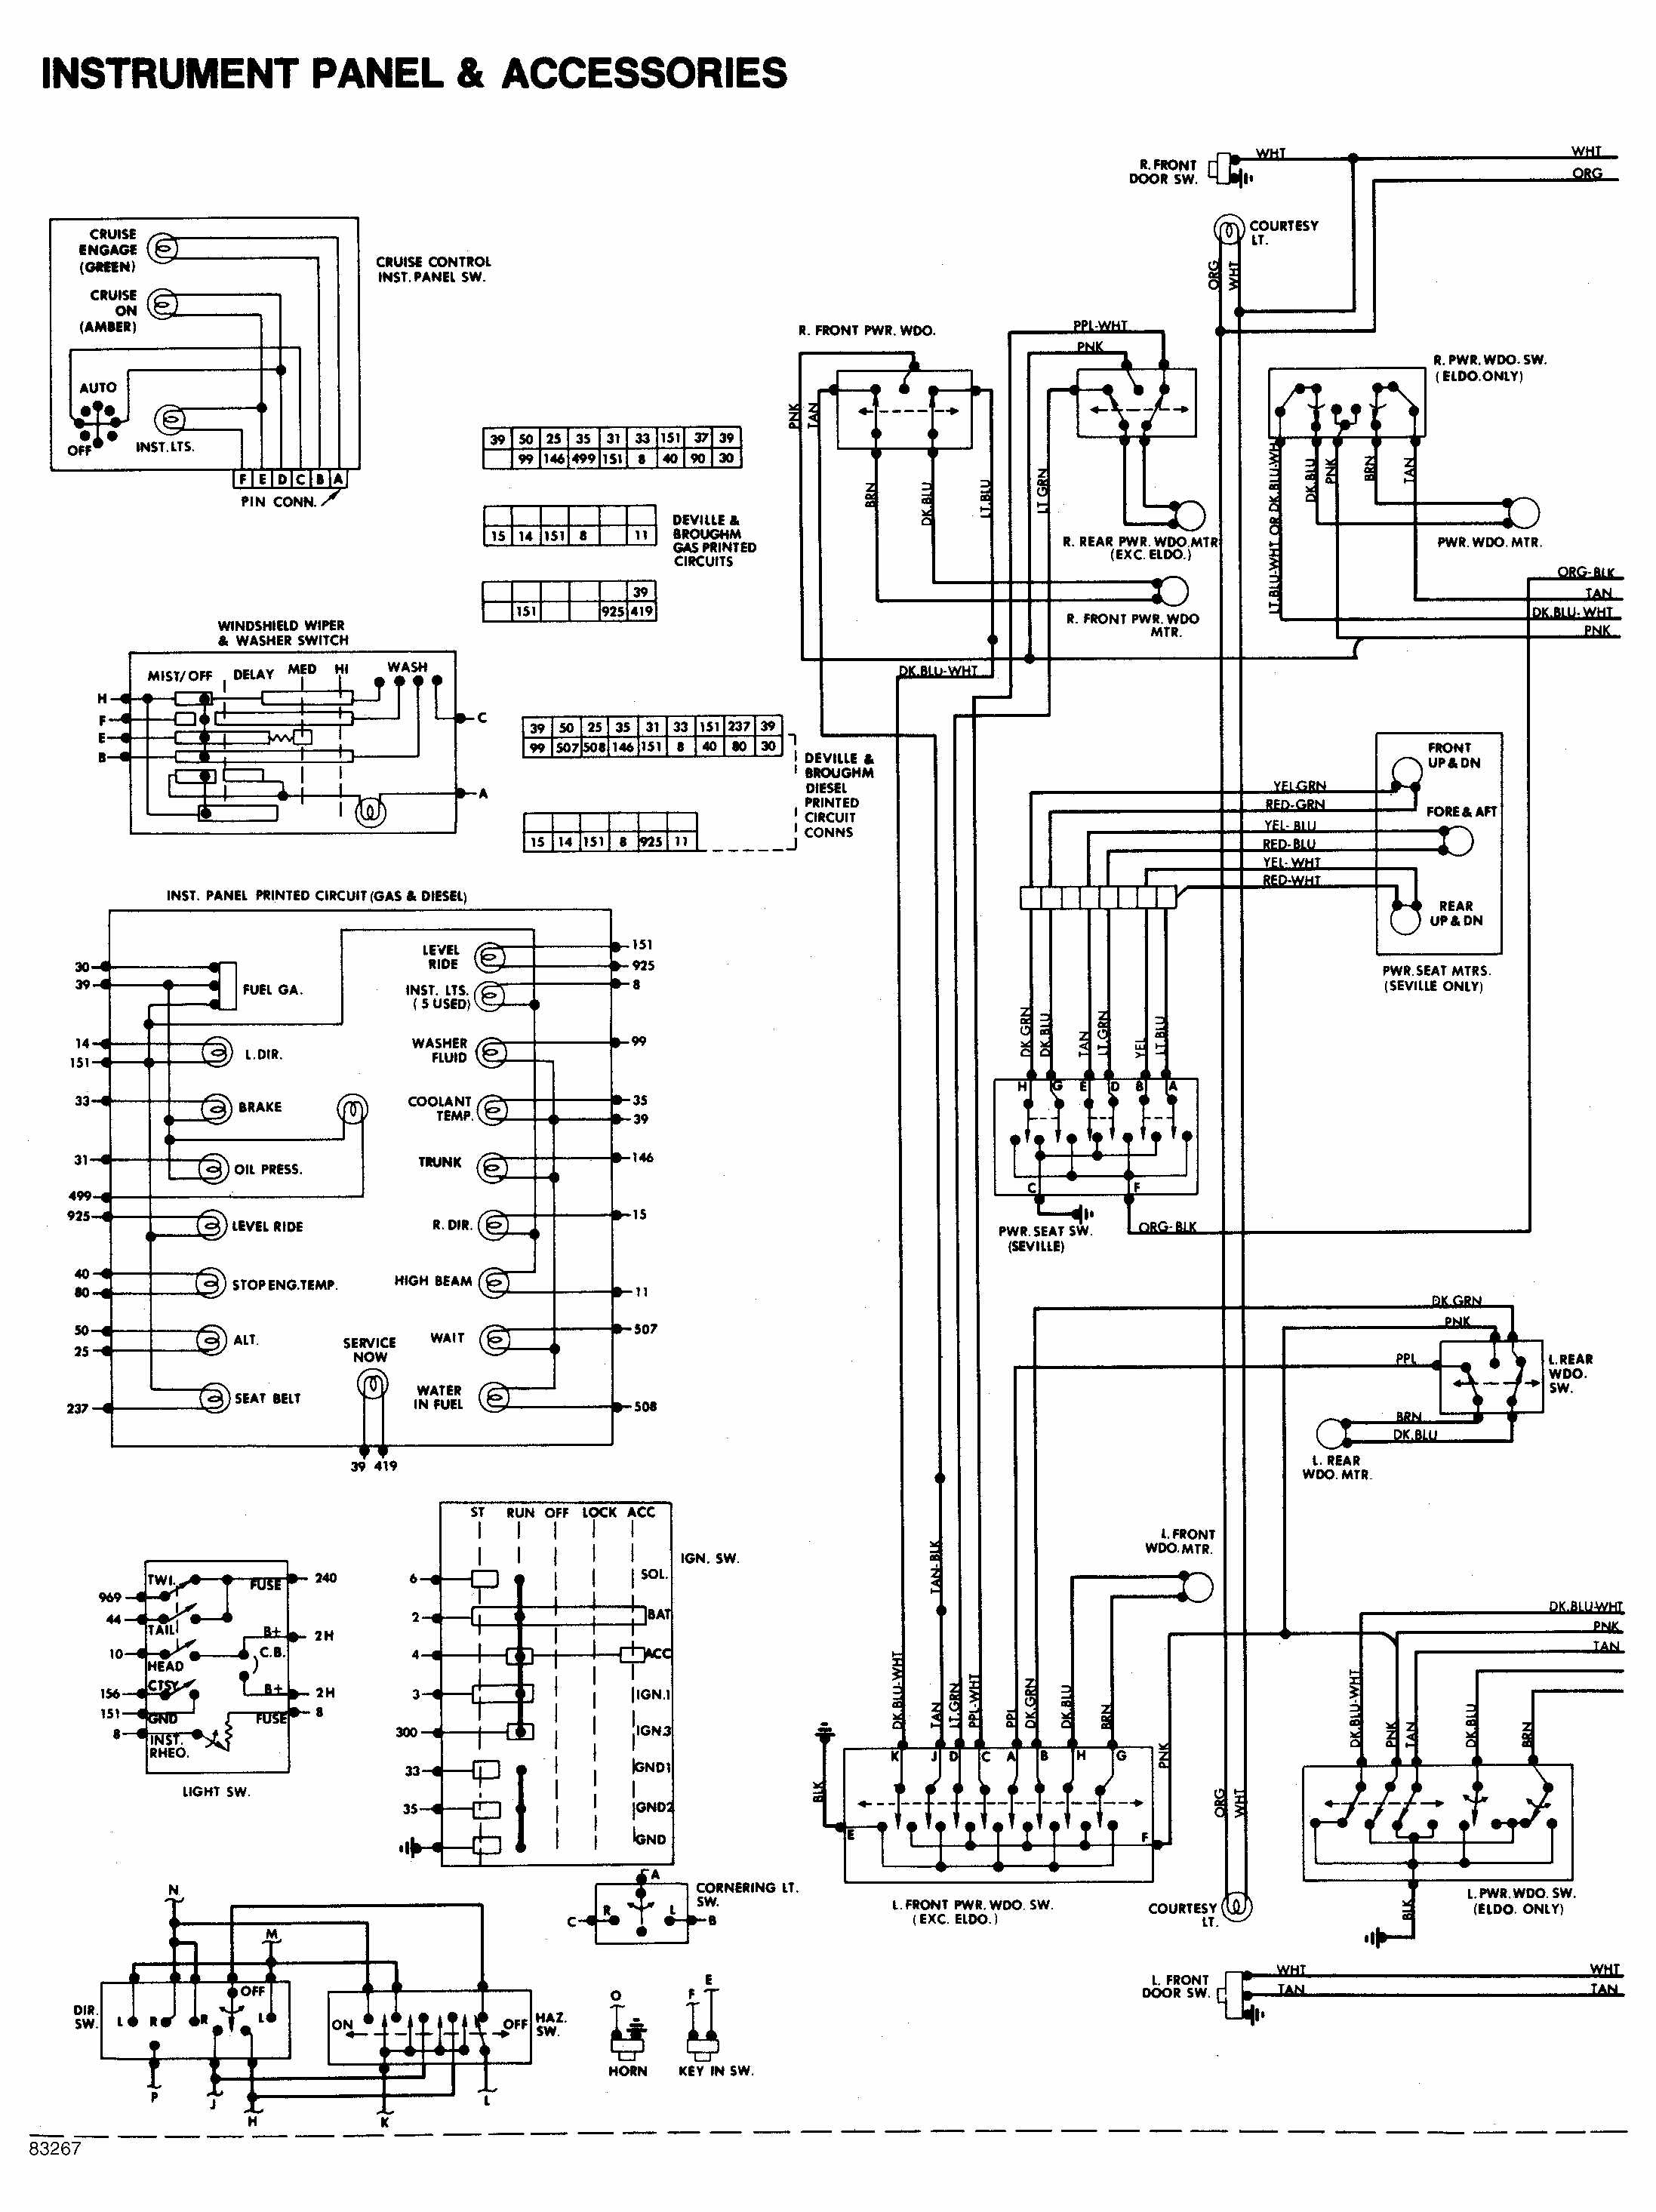 69 Mustang Fuse Box Diagram Wiring Schematic Library 2000 Ford Panel Chevy Diagrams Chassis 1969 Corvette Headlight